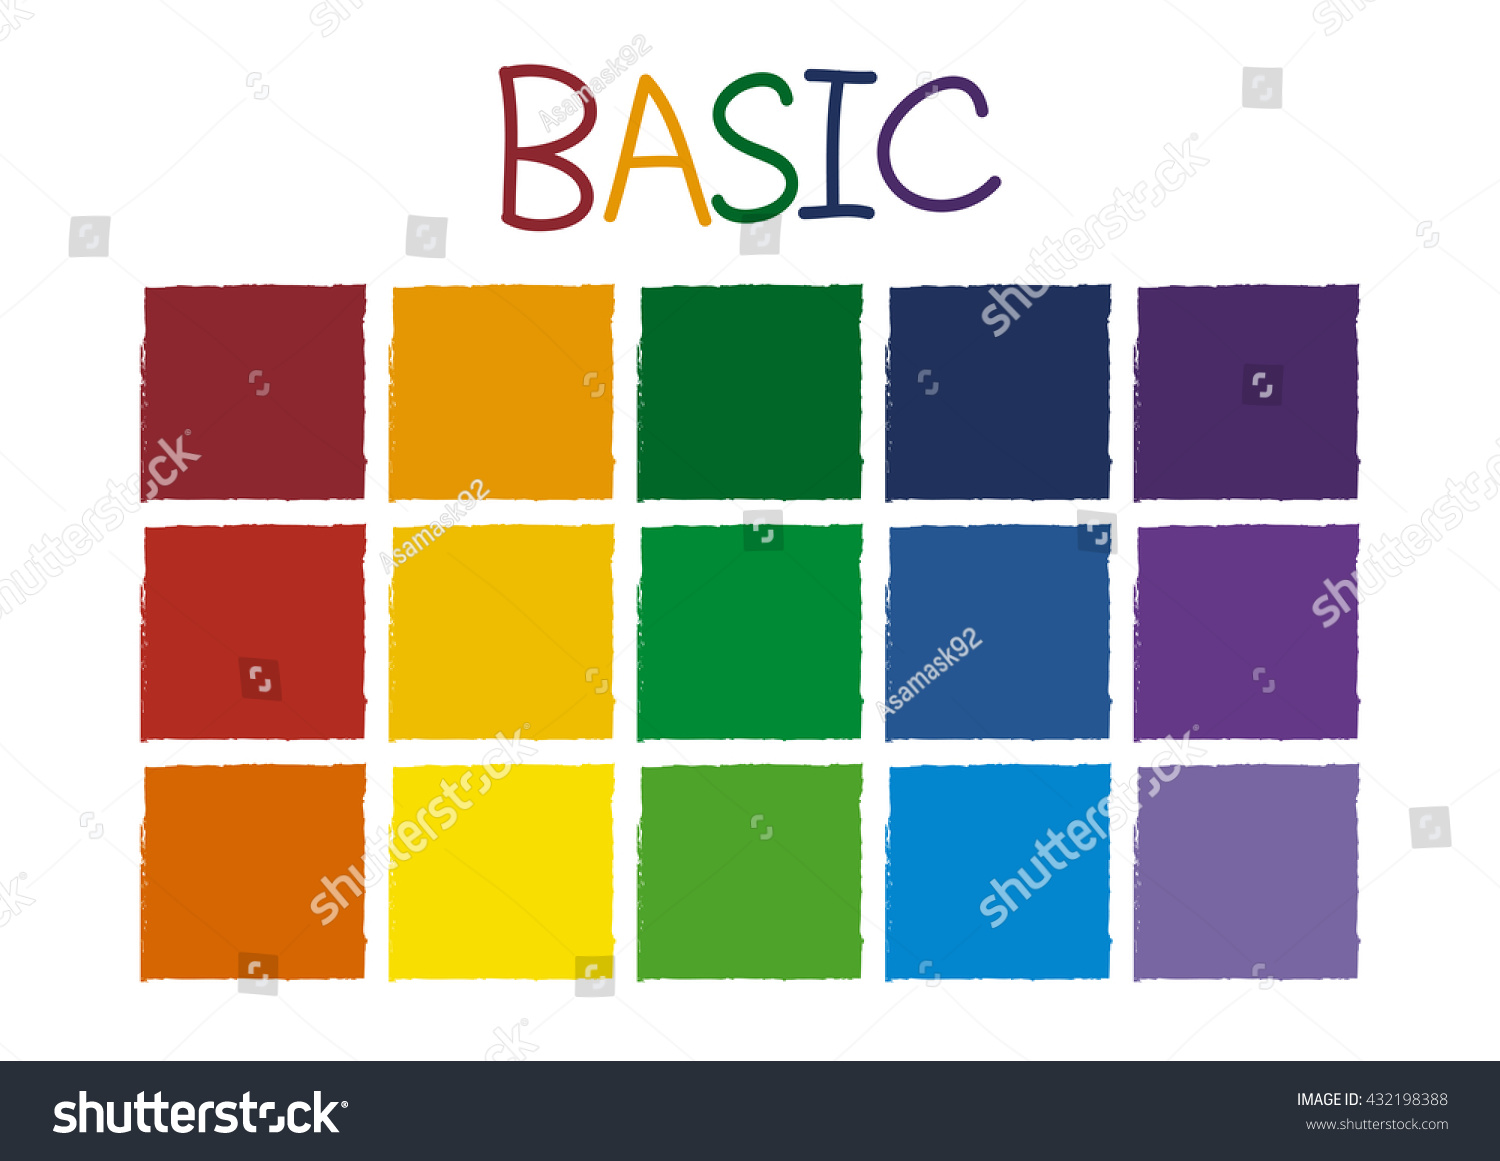 Basic Color Codes Resistor Code Learn Electronicscircuit Diagramrepair Tone Without Vector Stock Royalty Free 1500x1161